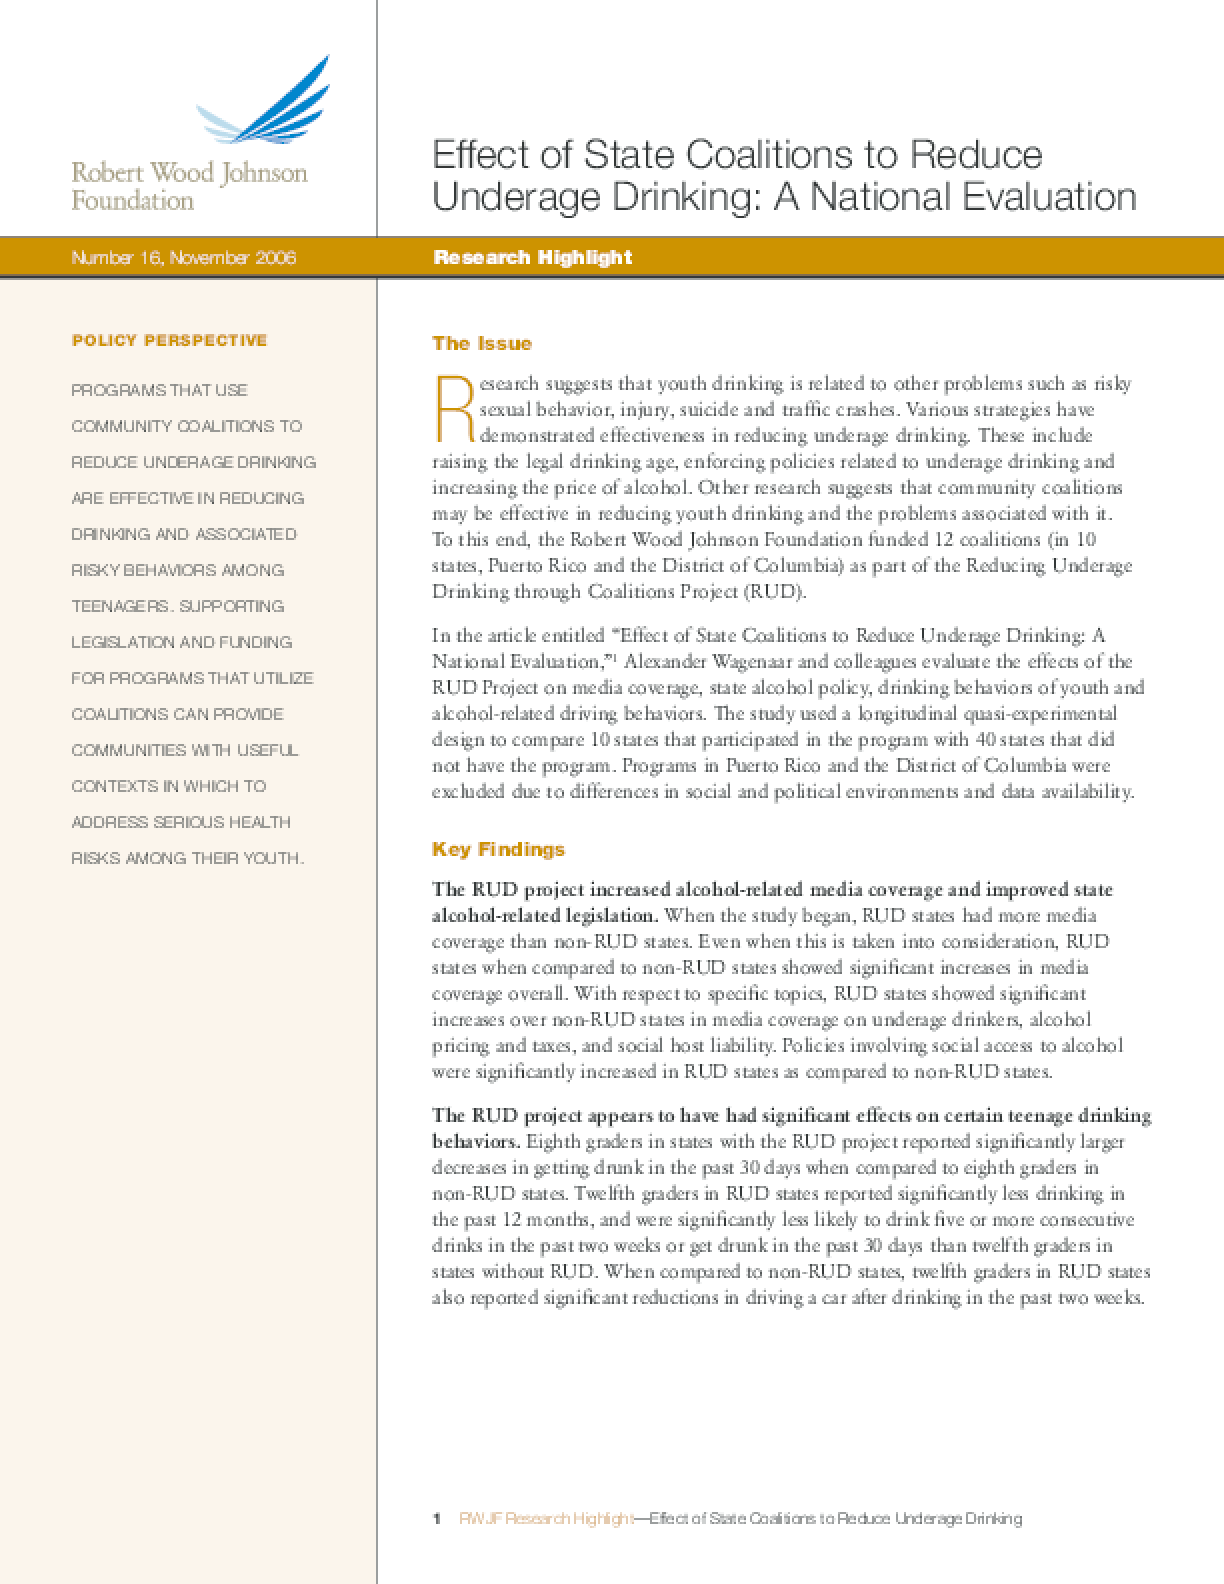 Effect of State Coalitions to Reduce Underage Drinking: A National Evaluation